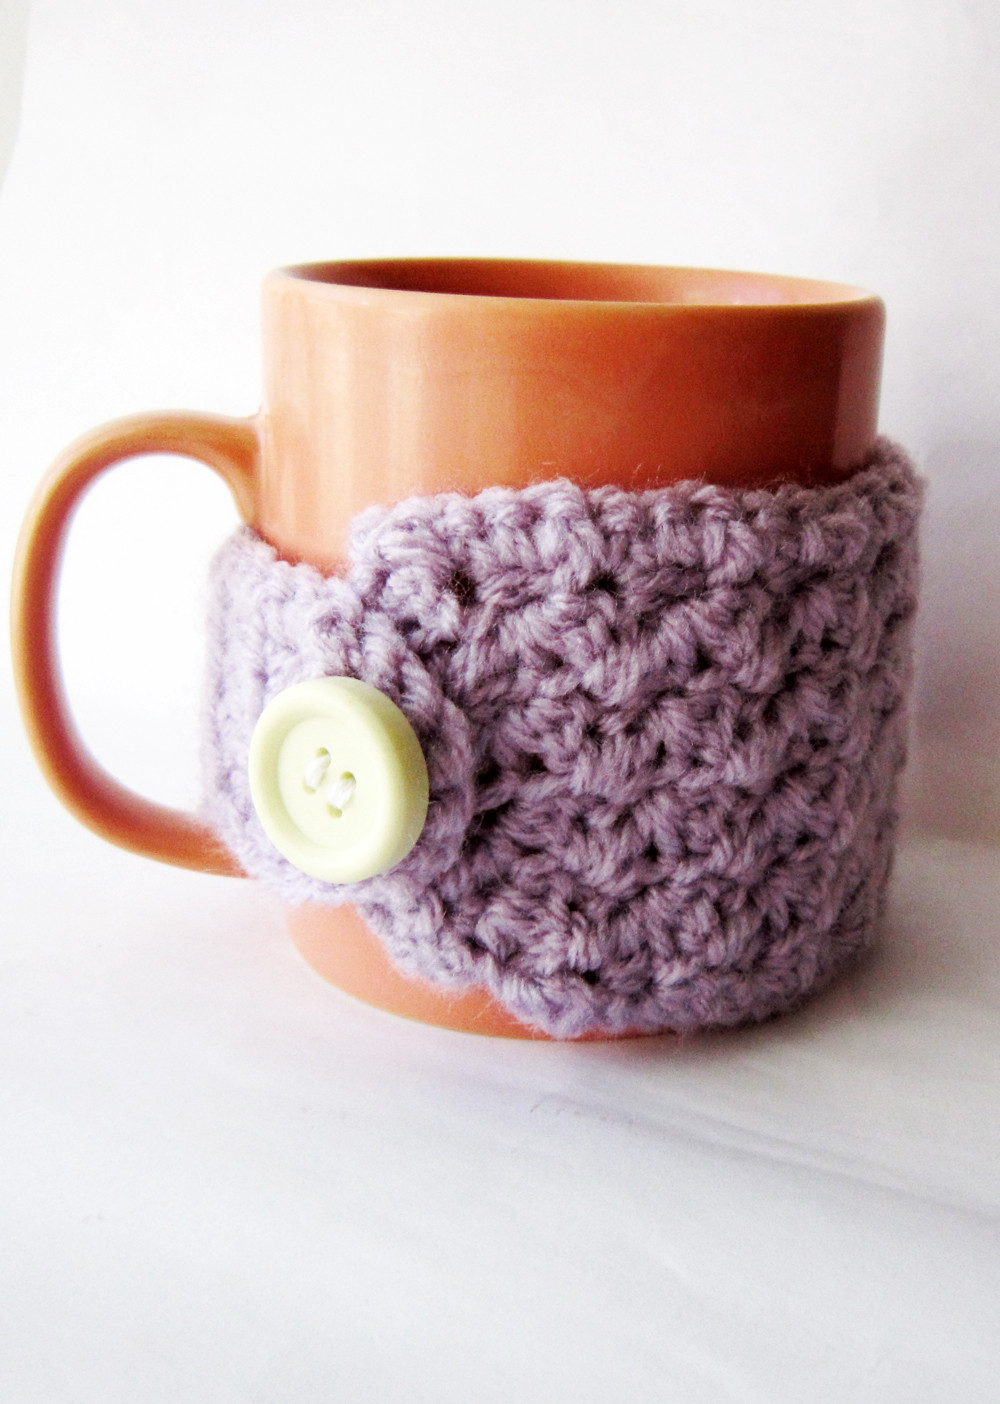 Crochet Coffee Cup Cozy Inspirational Easy Crochet Mug Cozy Free Pattern Akamatra Of Crochet Coffee Cup Cozy Best Of Craftdrawer Crafts Free Easy to Crochet Mug Cozy Patterns